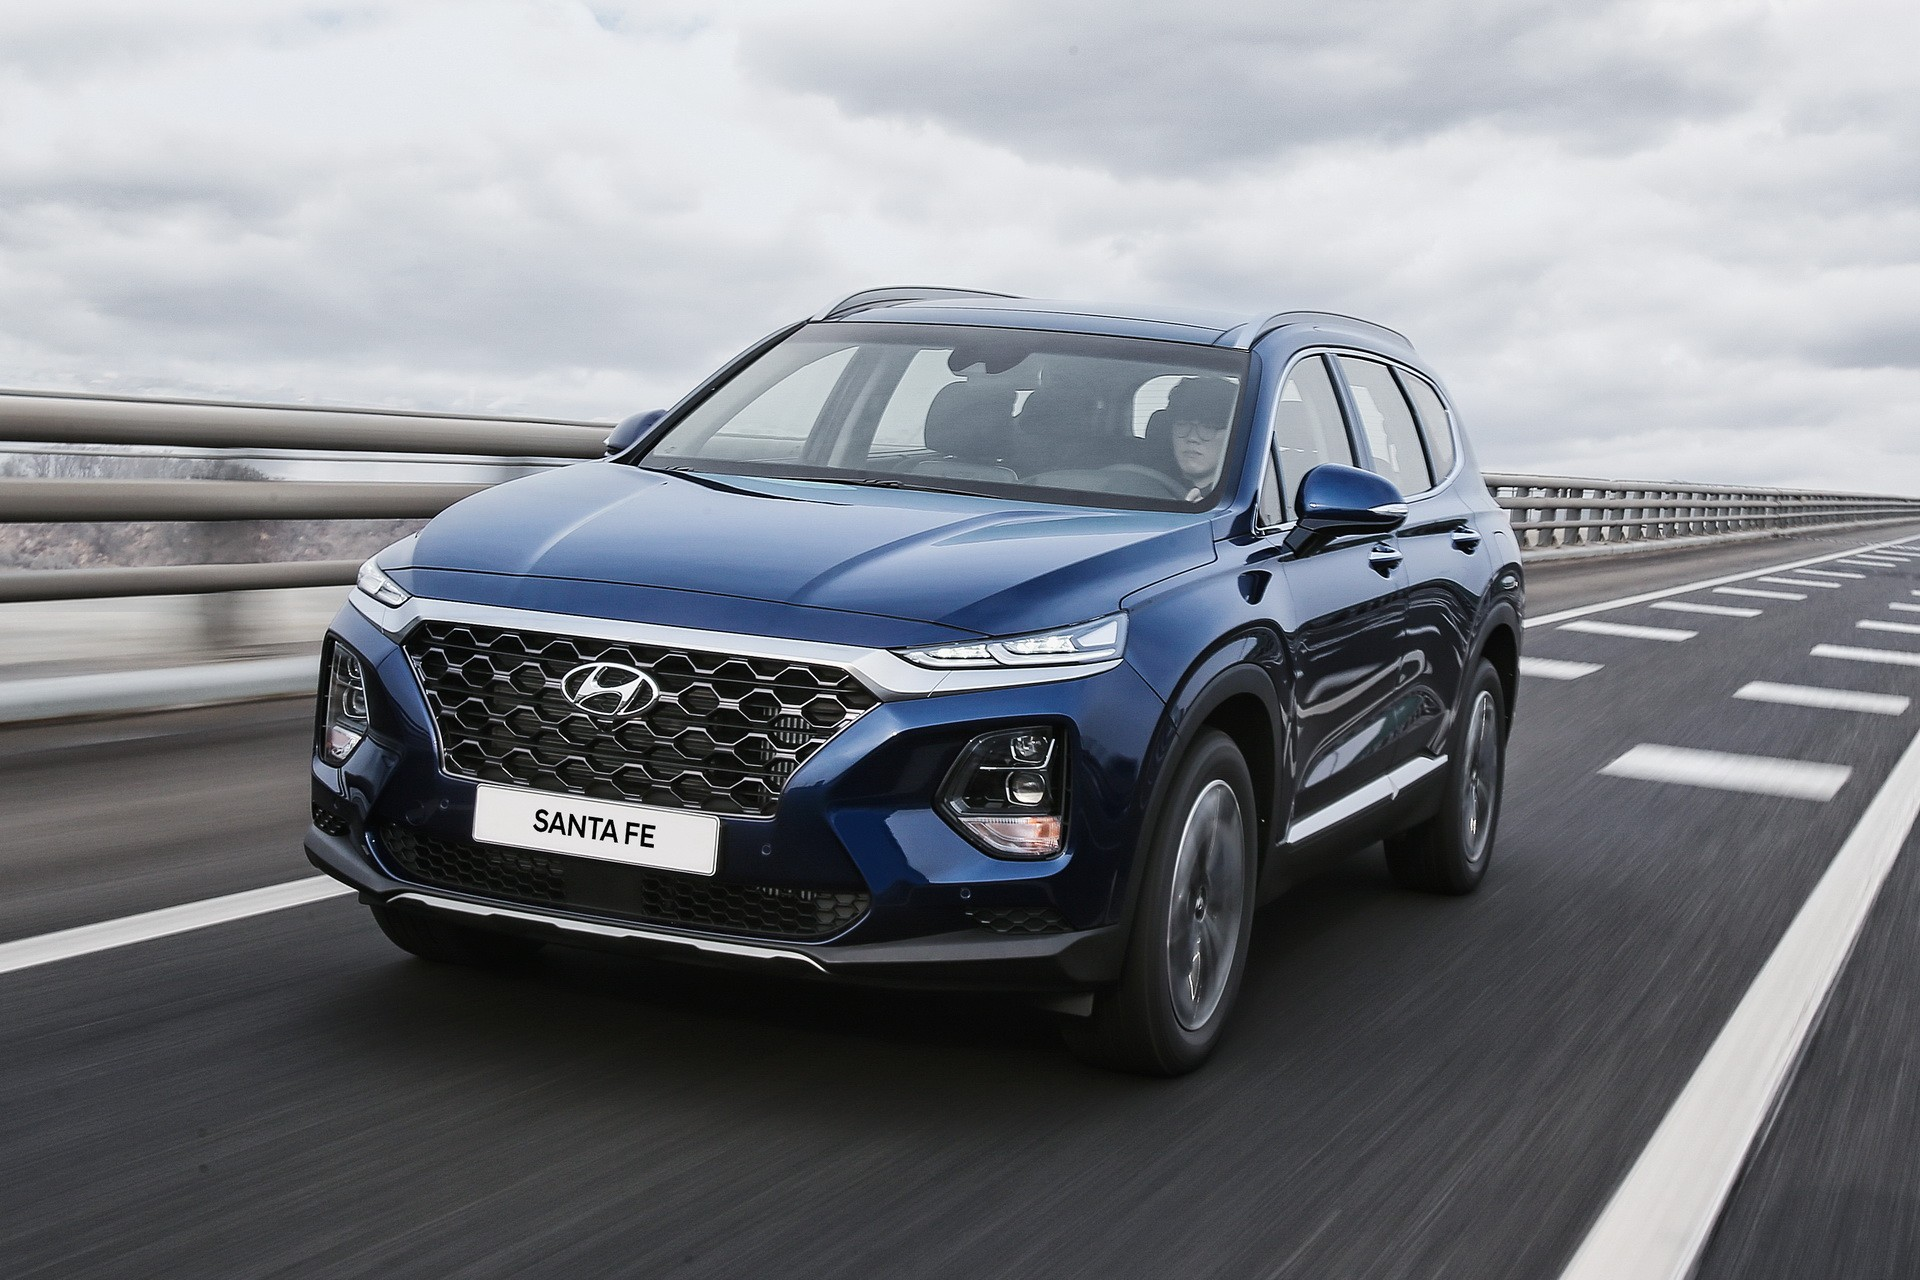 new hyundai santa fe getting diesel engine in america in. Black Bedroom Furniture Sets. Home Design Ideas